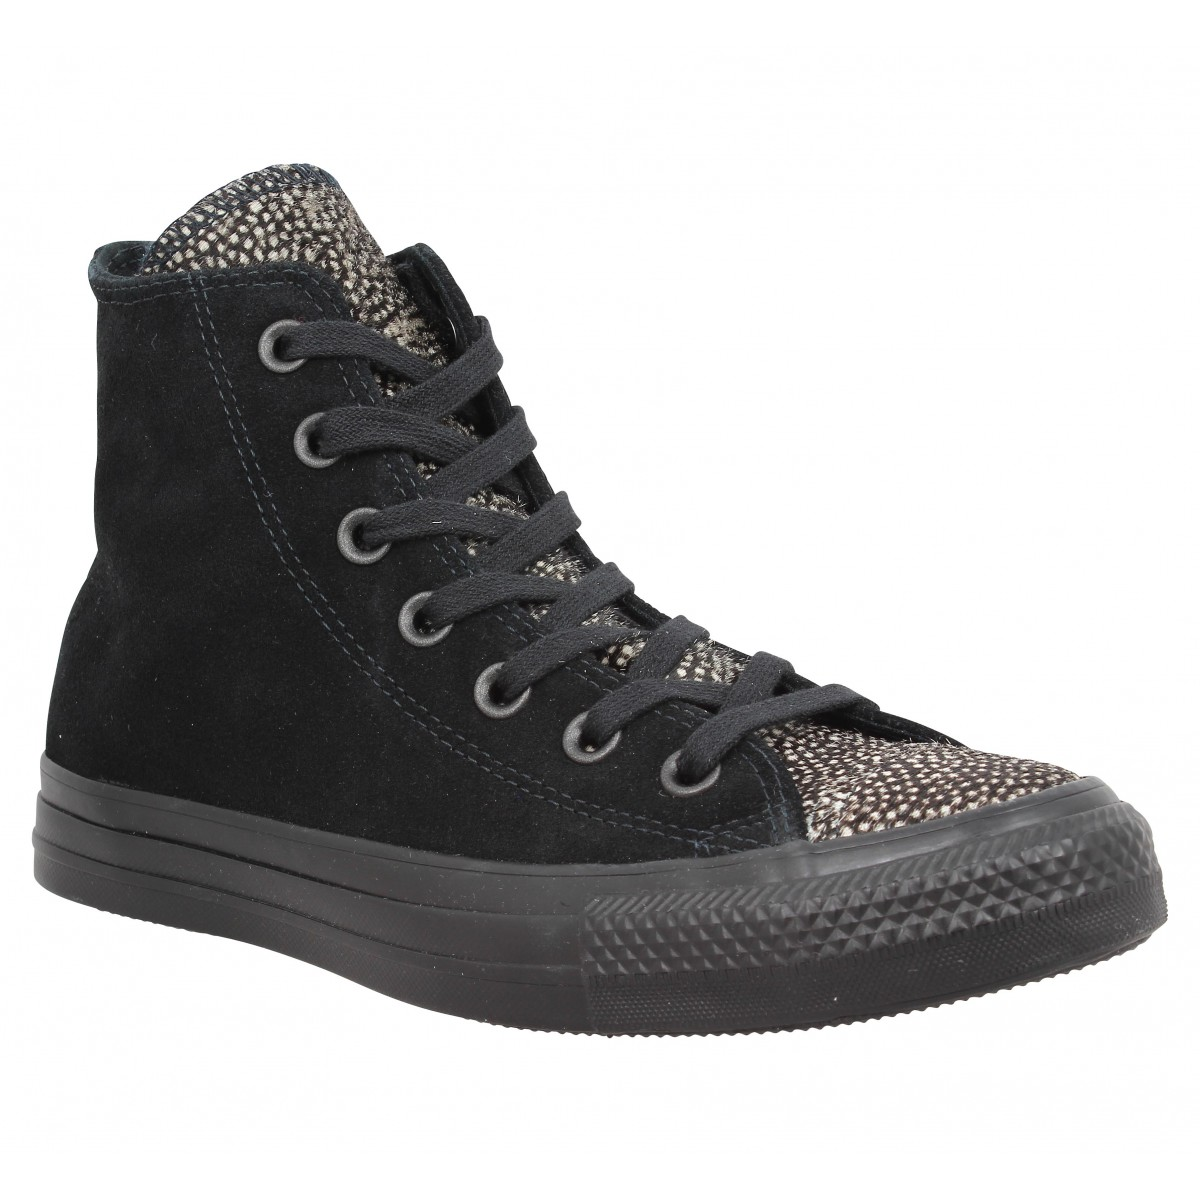 Baskets CONVERSE Chuck Taylor All Star Hi velours Femme Noir